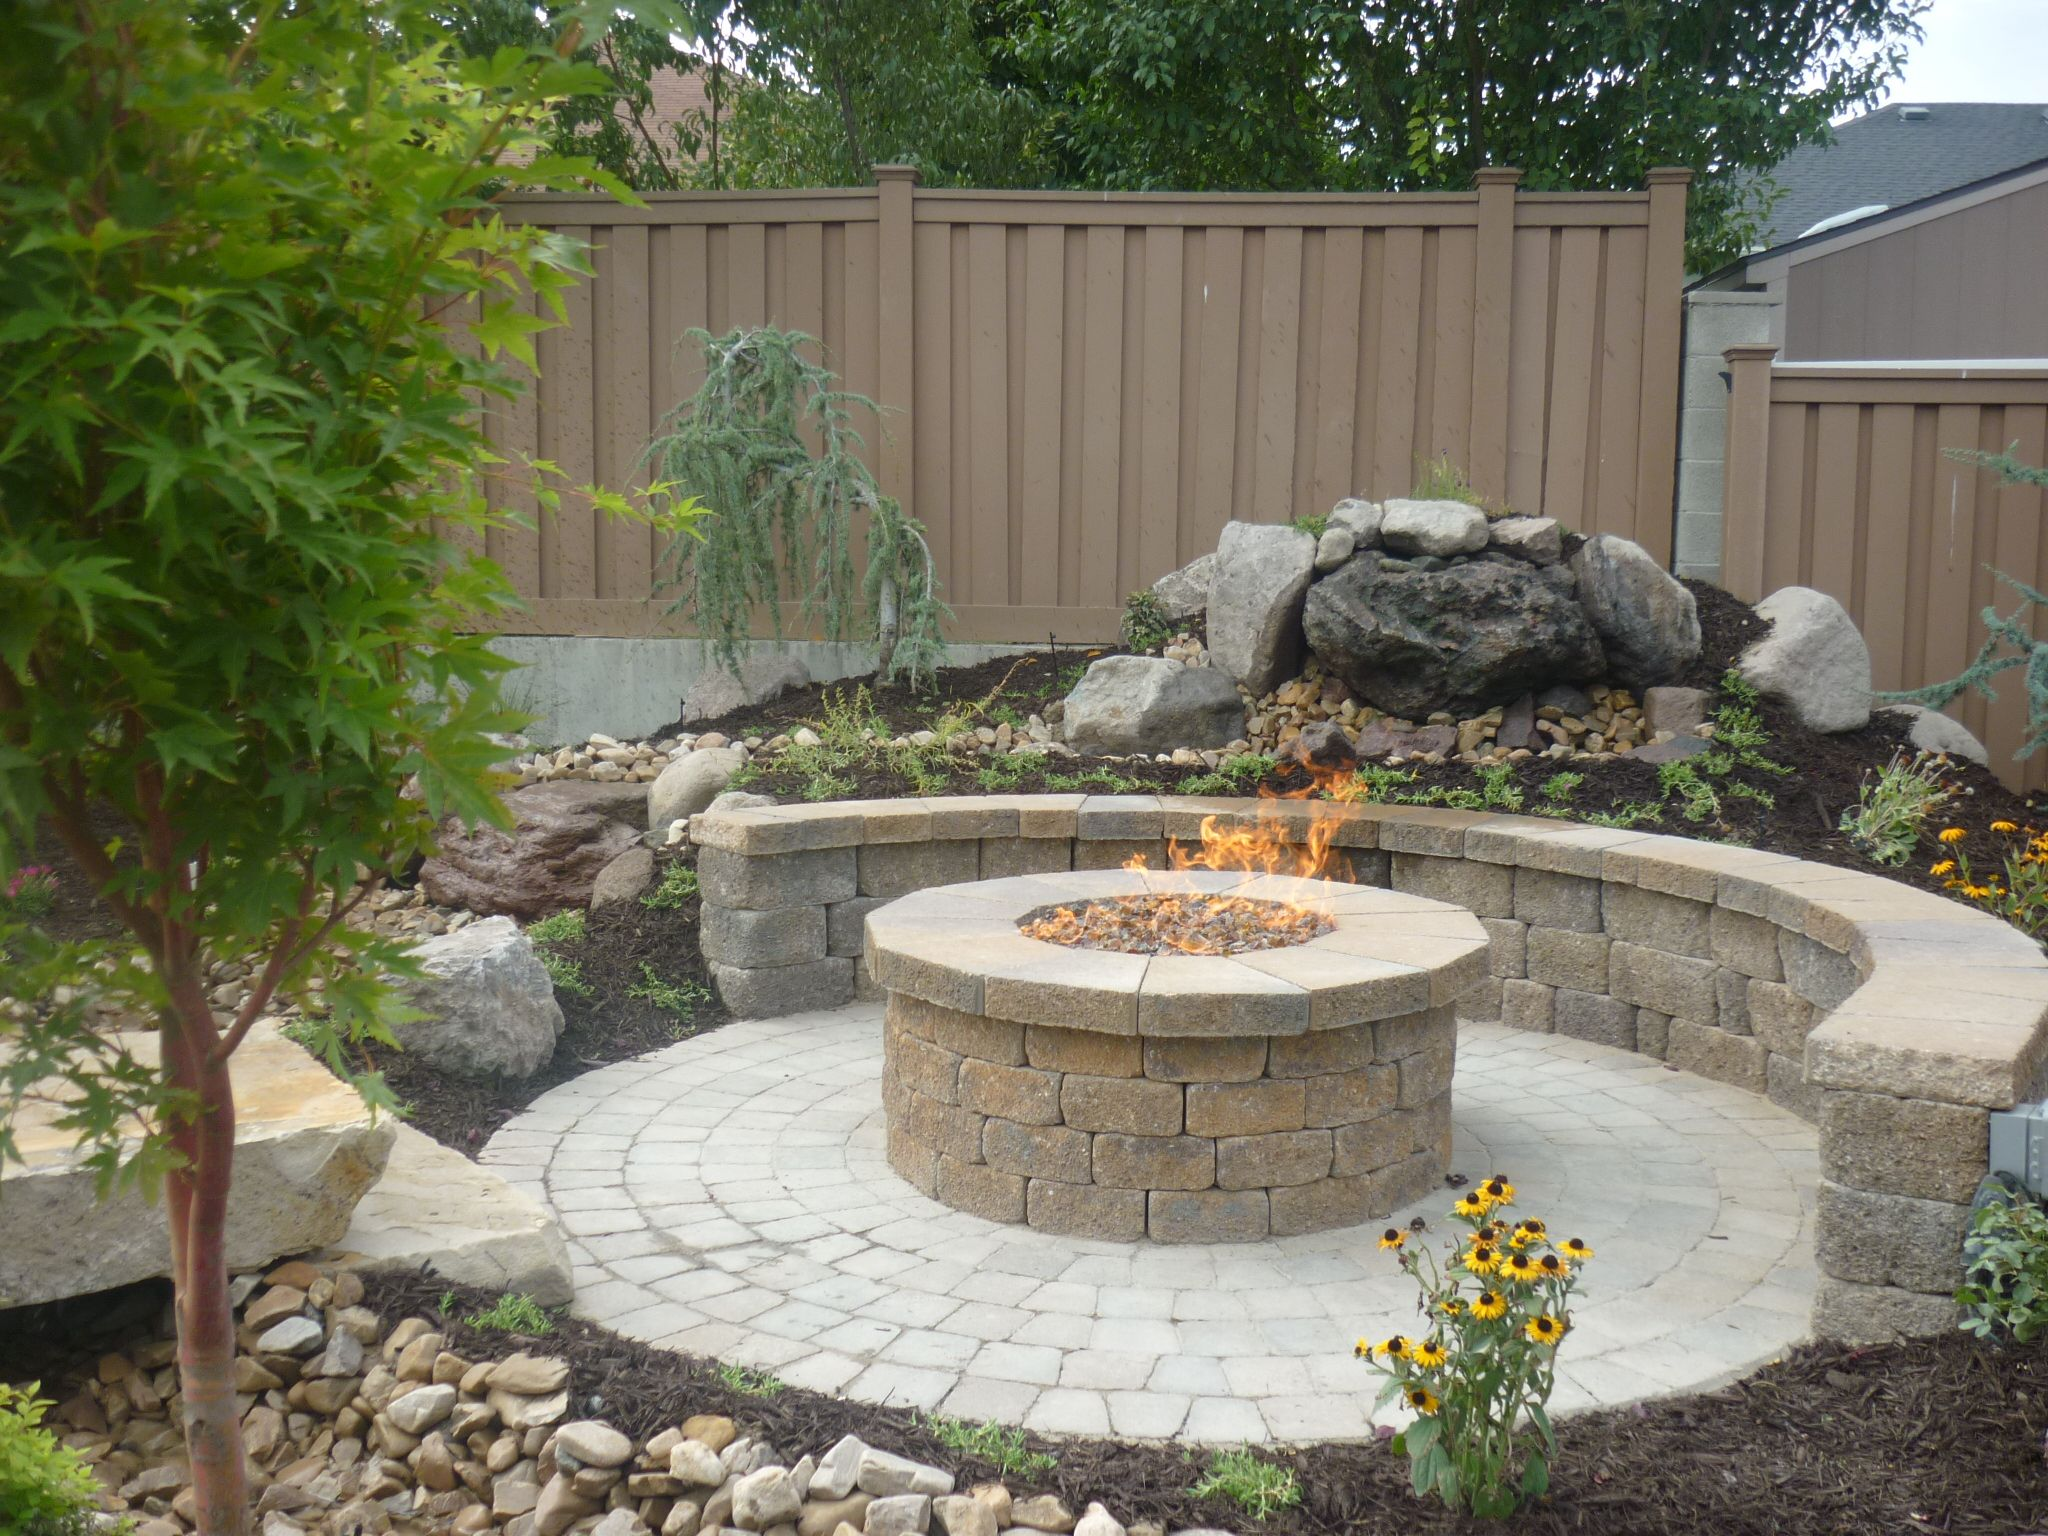 Raised fire pit landscaping pinterest exterior design backyard patio ideas patio ideas great circular paver patio kit with large round outdoor fire pit and do it yourself retaining wall from natural sandstone solutioingenieria Images